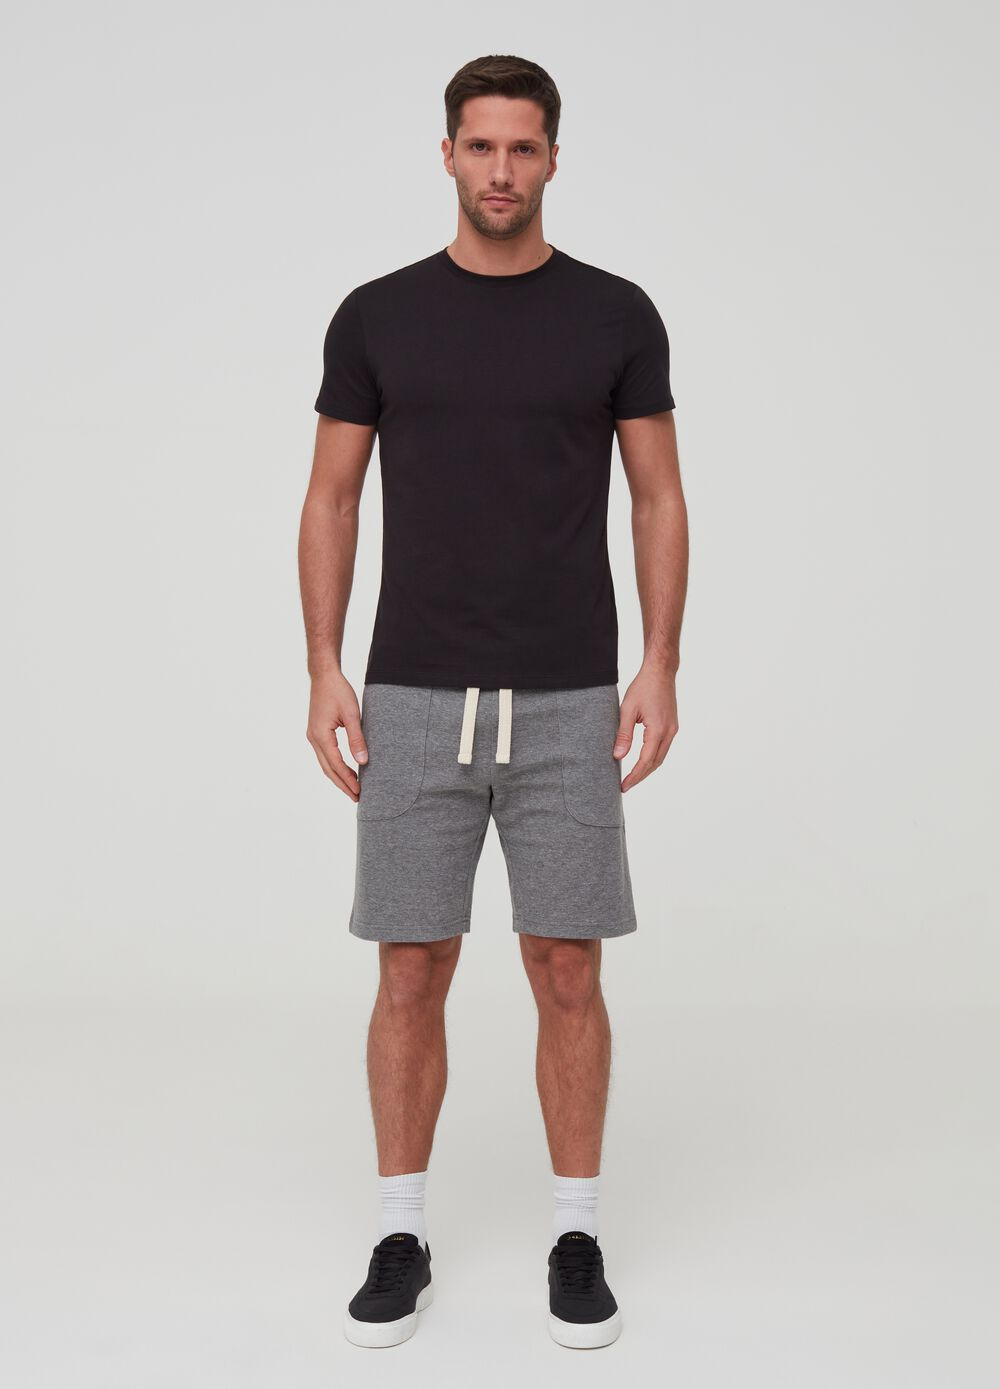 Short mélange joggers with pockets